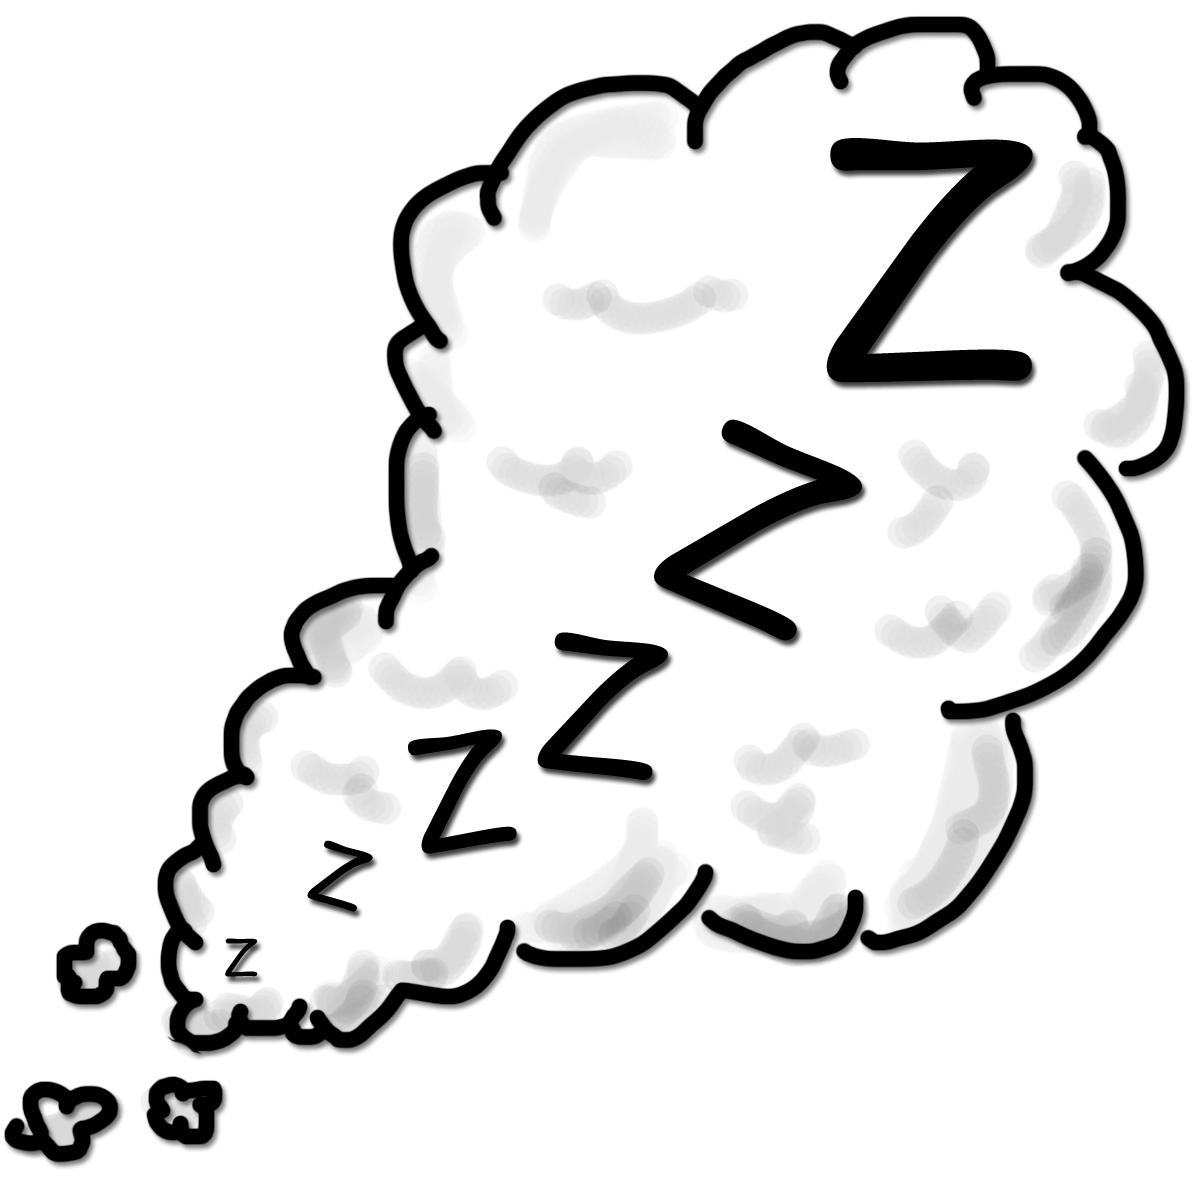 Sleep z-s clipart png free download Free Sleepy Cliparts, Download Free Clip Art, Free Clip Art ... png free download